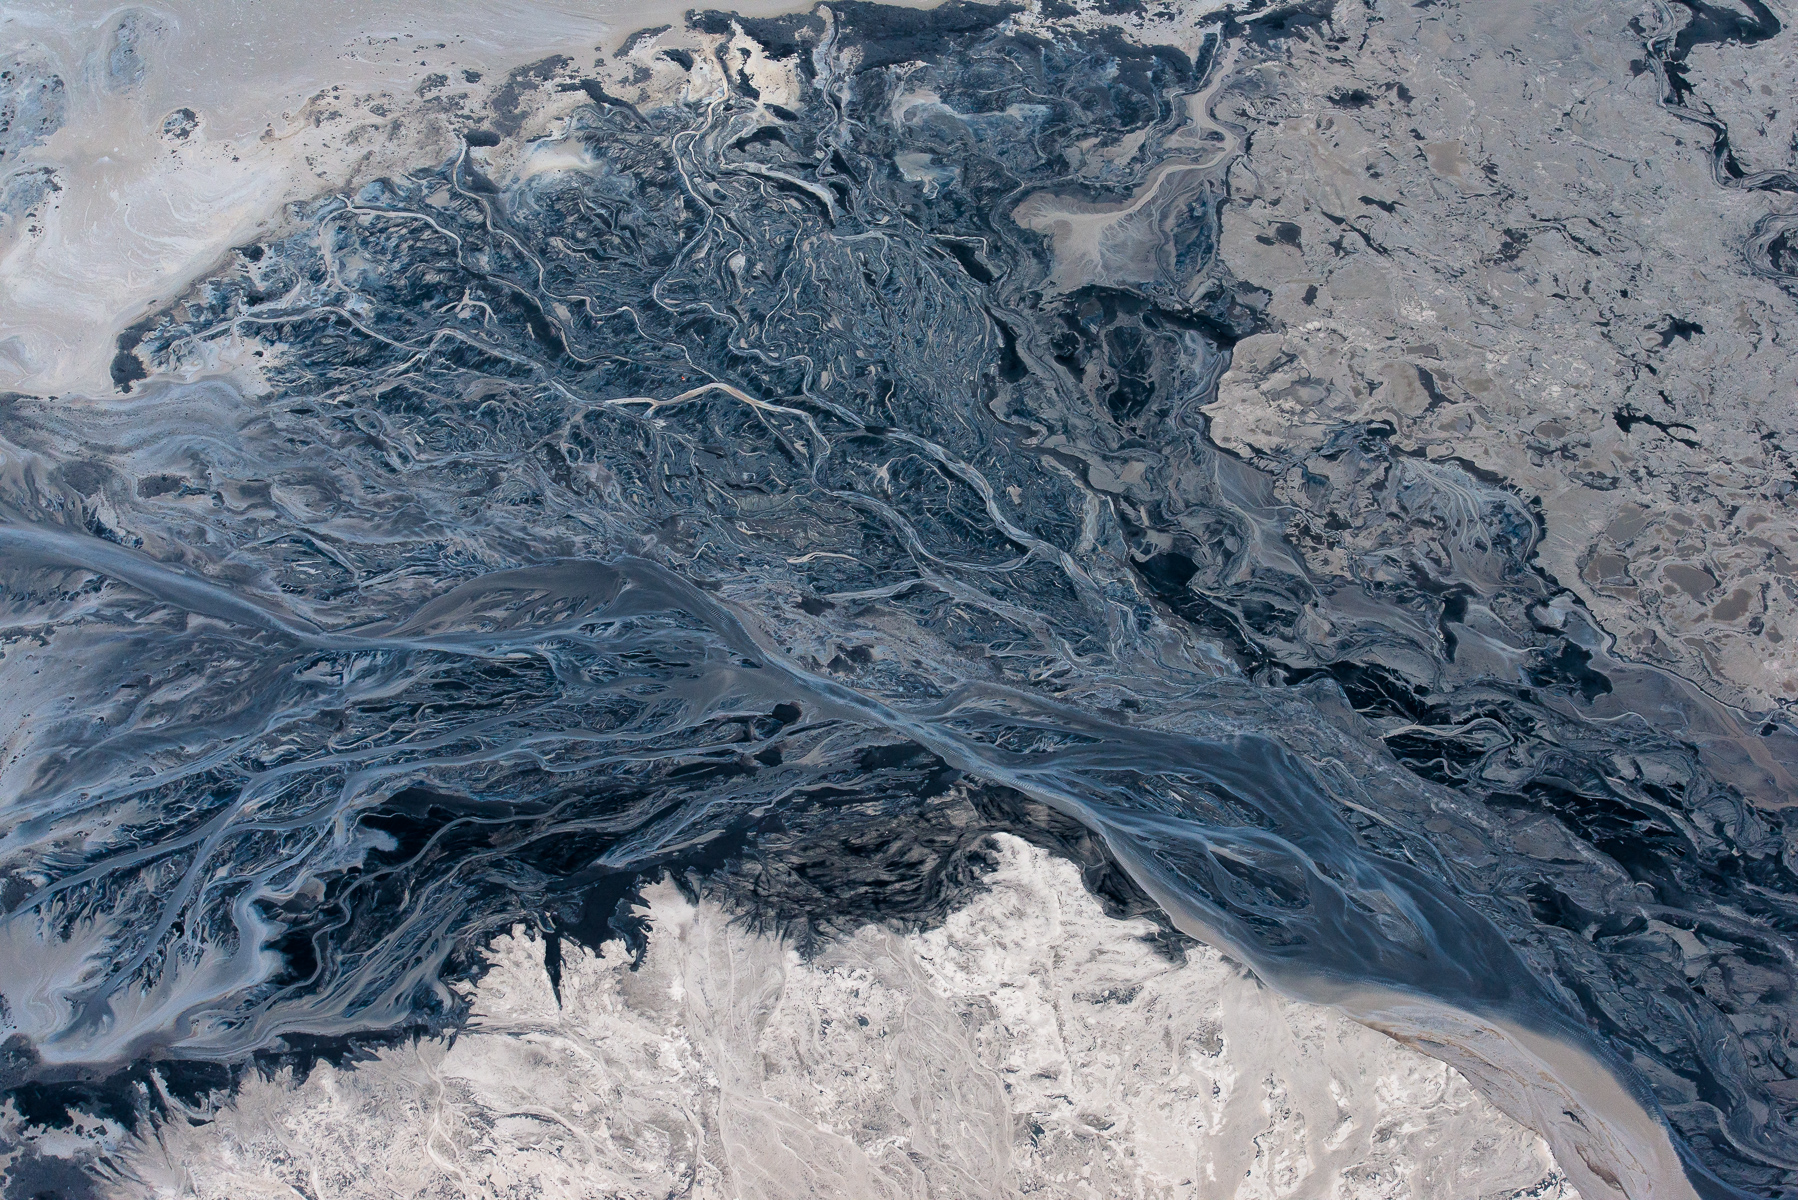 "Tar Sands tailings pond abstract.Limited Edition Fine Art PrintsAll prices in U.S. dollars.Prices are for prints only and do not include tax or shipping.16""x24""  		edition of 25	  /  $100020""x30""		edition of 15  /  $150030""x45""		edition of 10	  /  $3500	40""x60"" / 	       edition of 6   /   $6000"